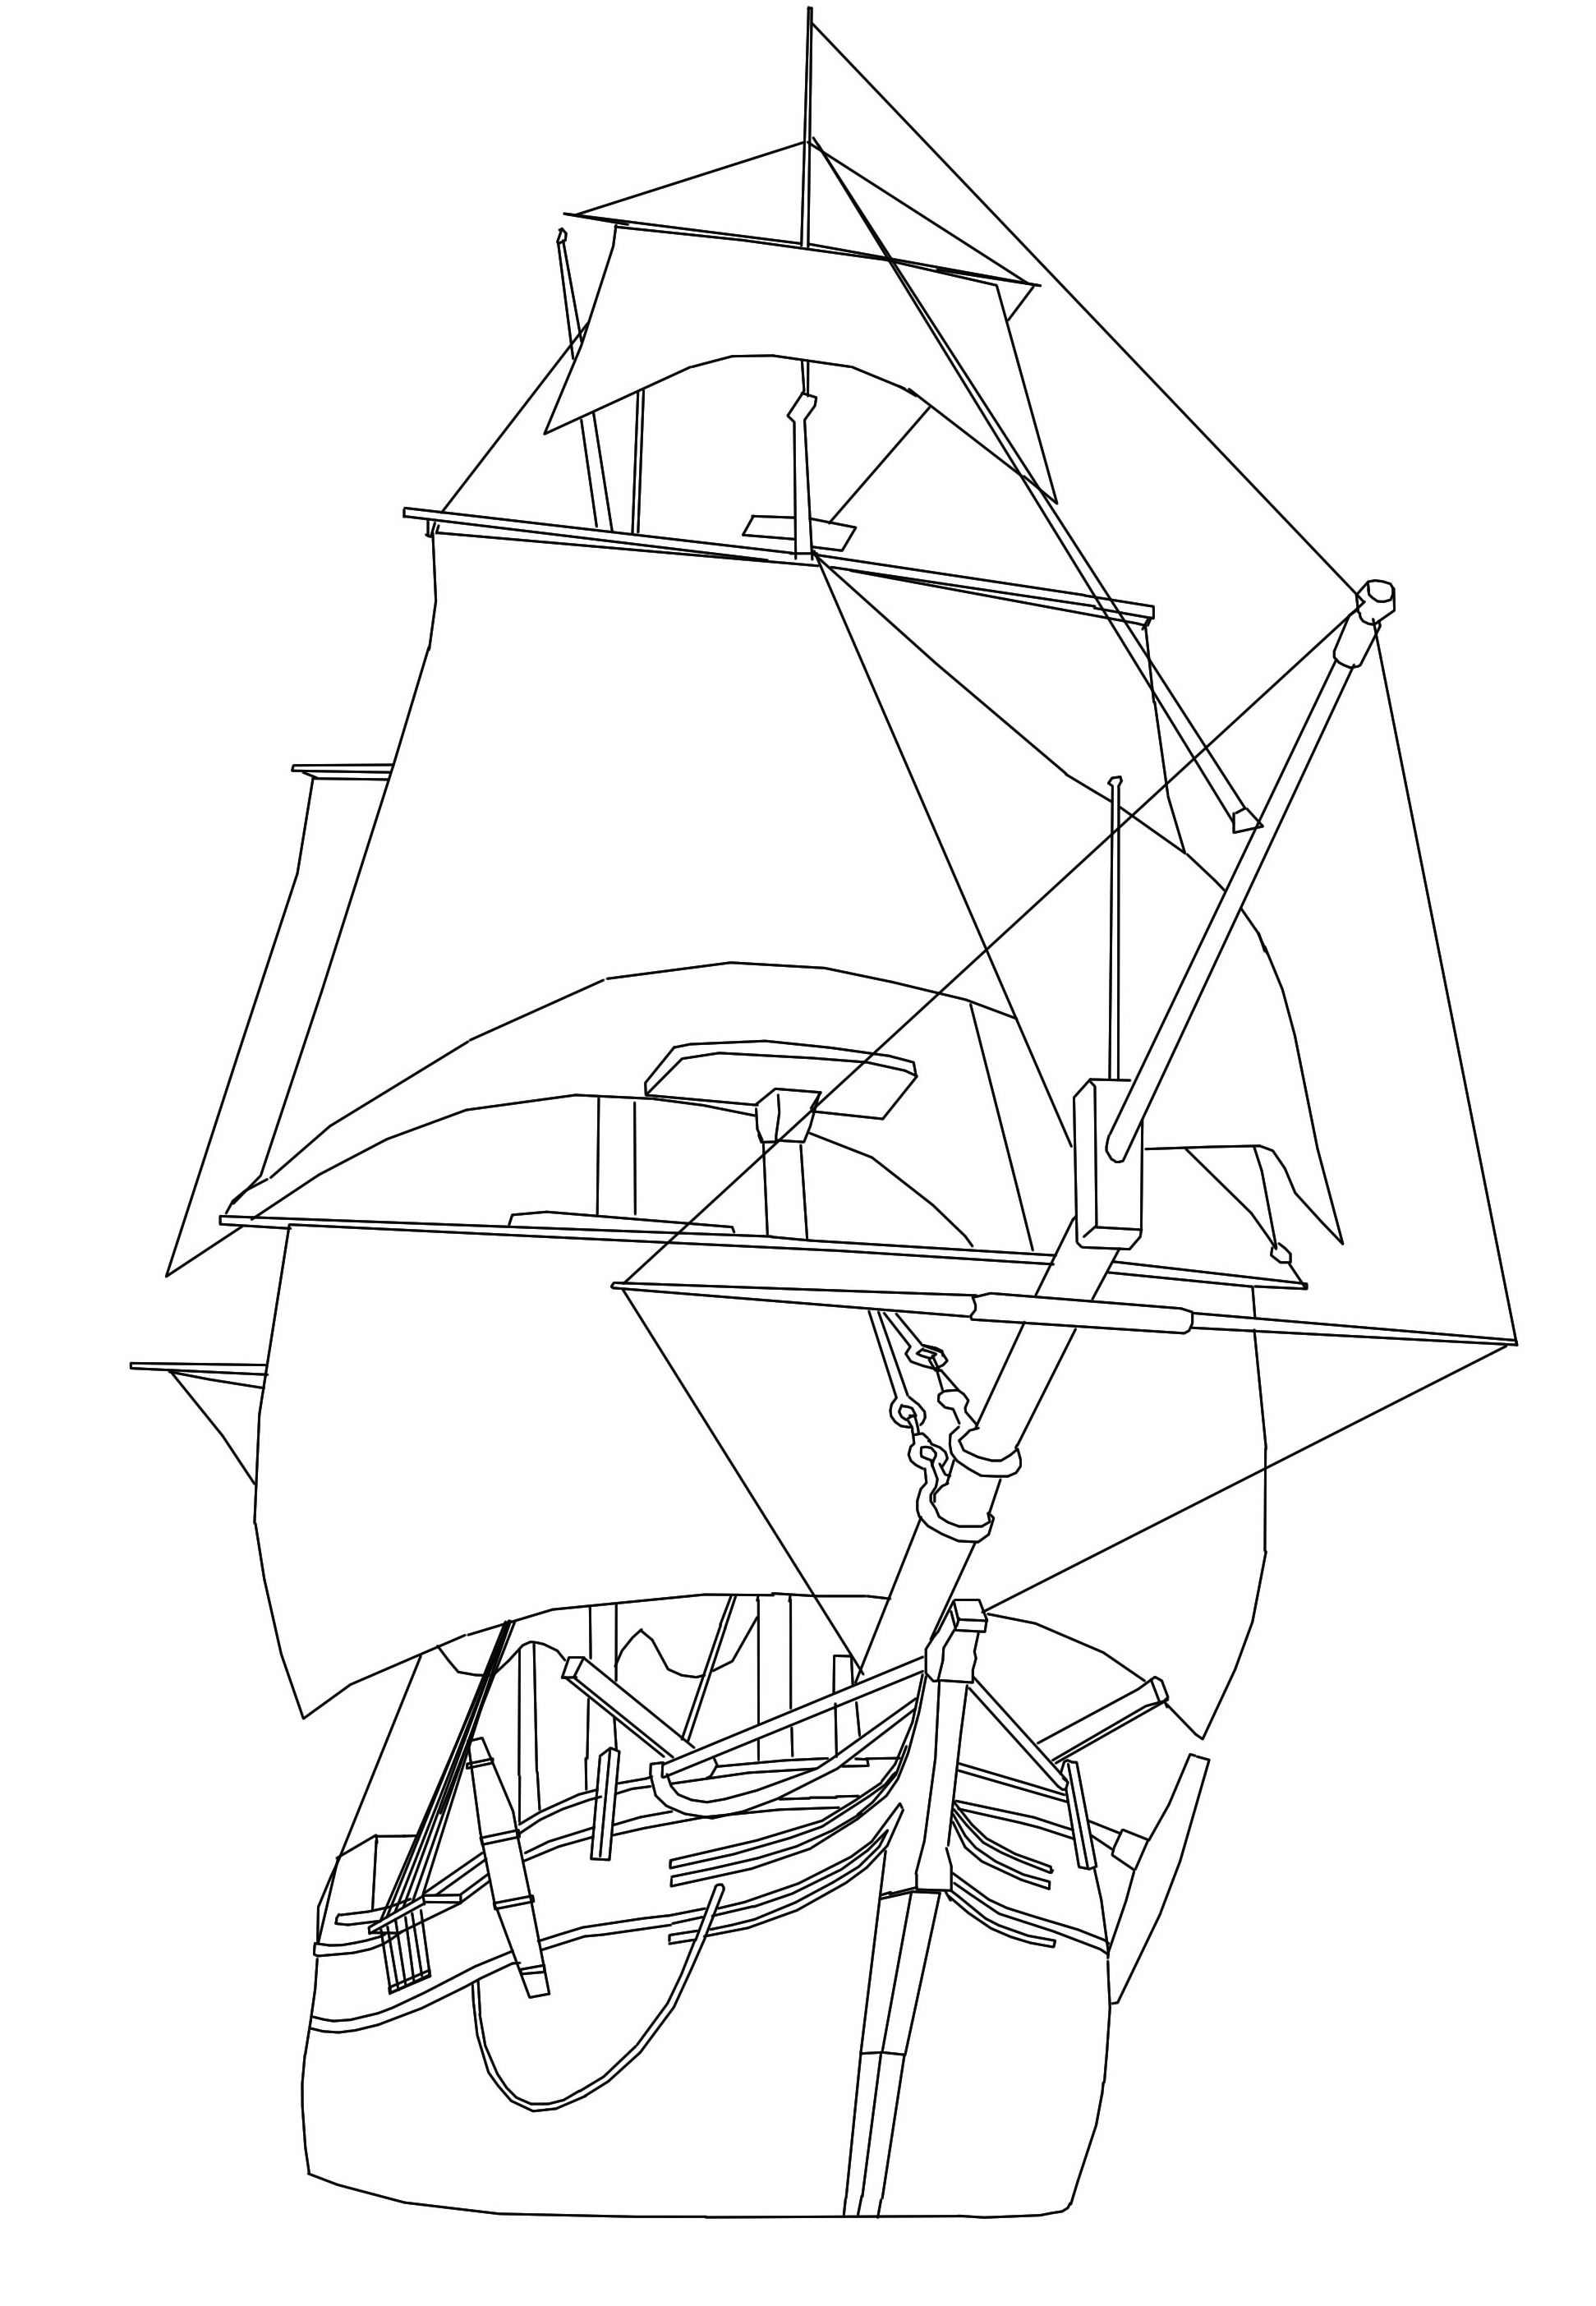 ship drawing clipper ship images line drawing clipart best drawing ship